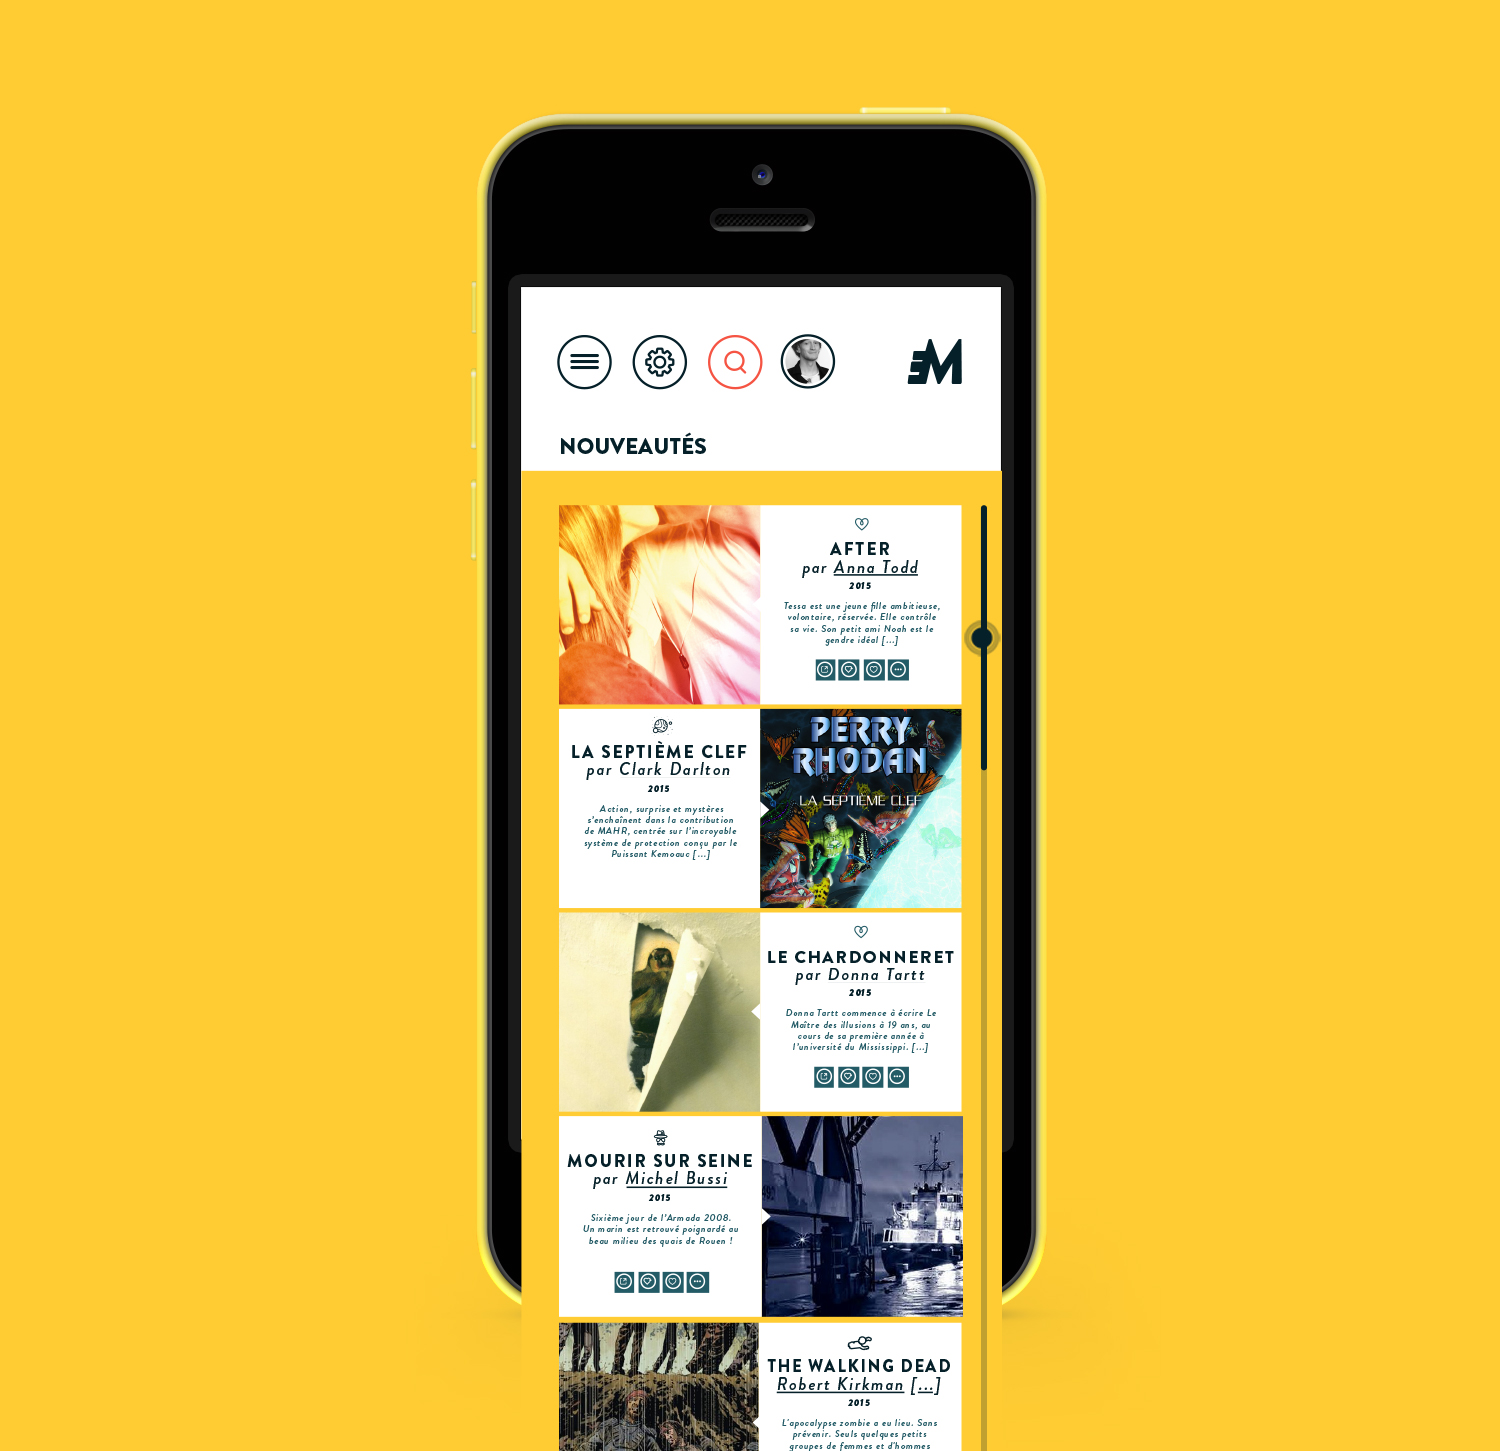 MediaTake - la culture mobile - nouveautés par Quentin Degrange, designer graphique freelance